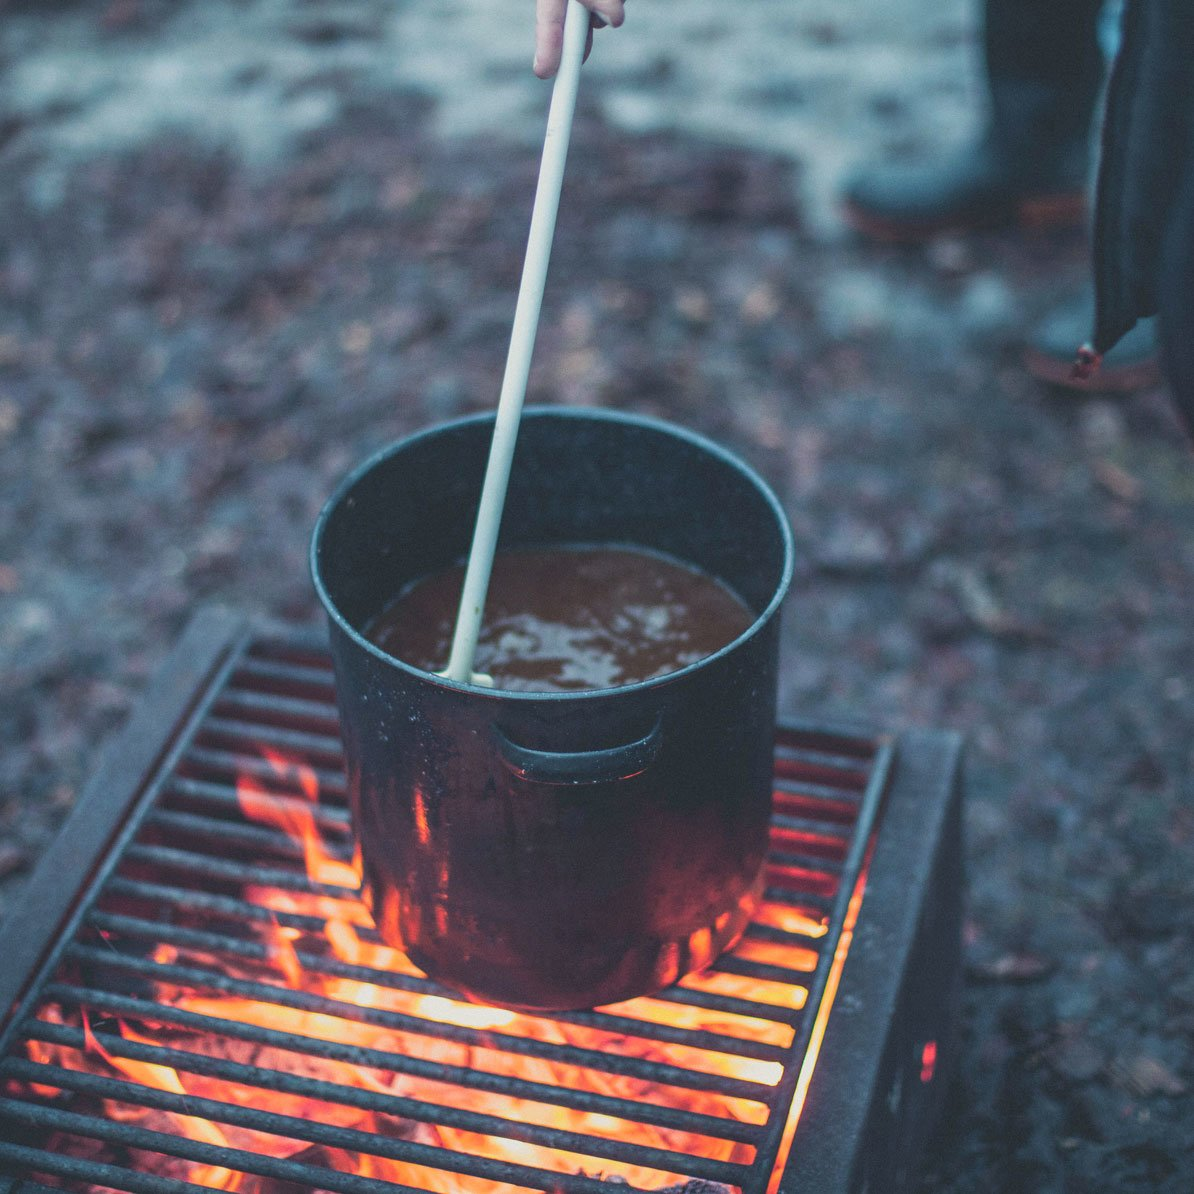 Open-fire brewing classes are offered at Fort Whyte Alive.